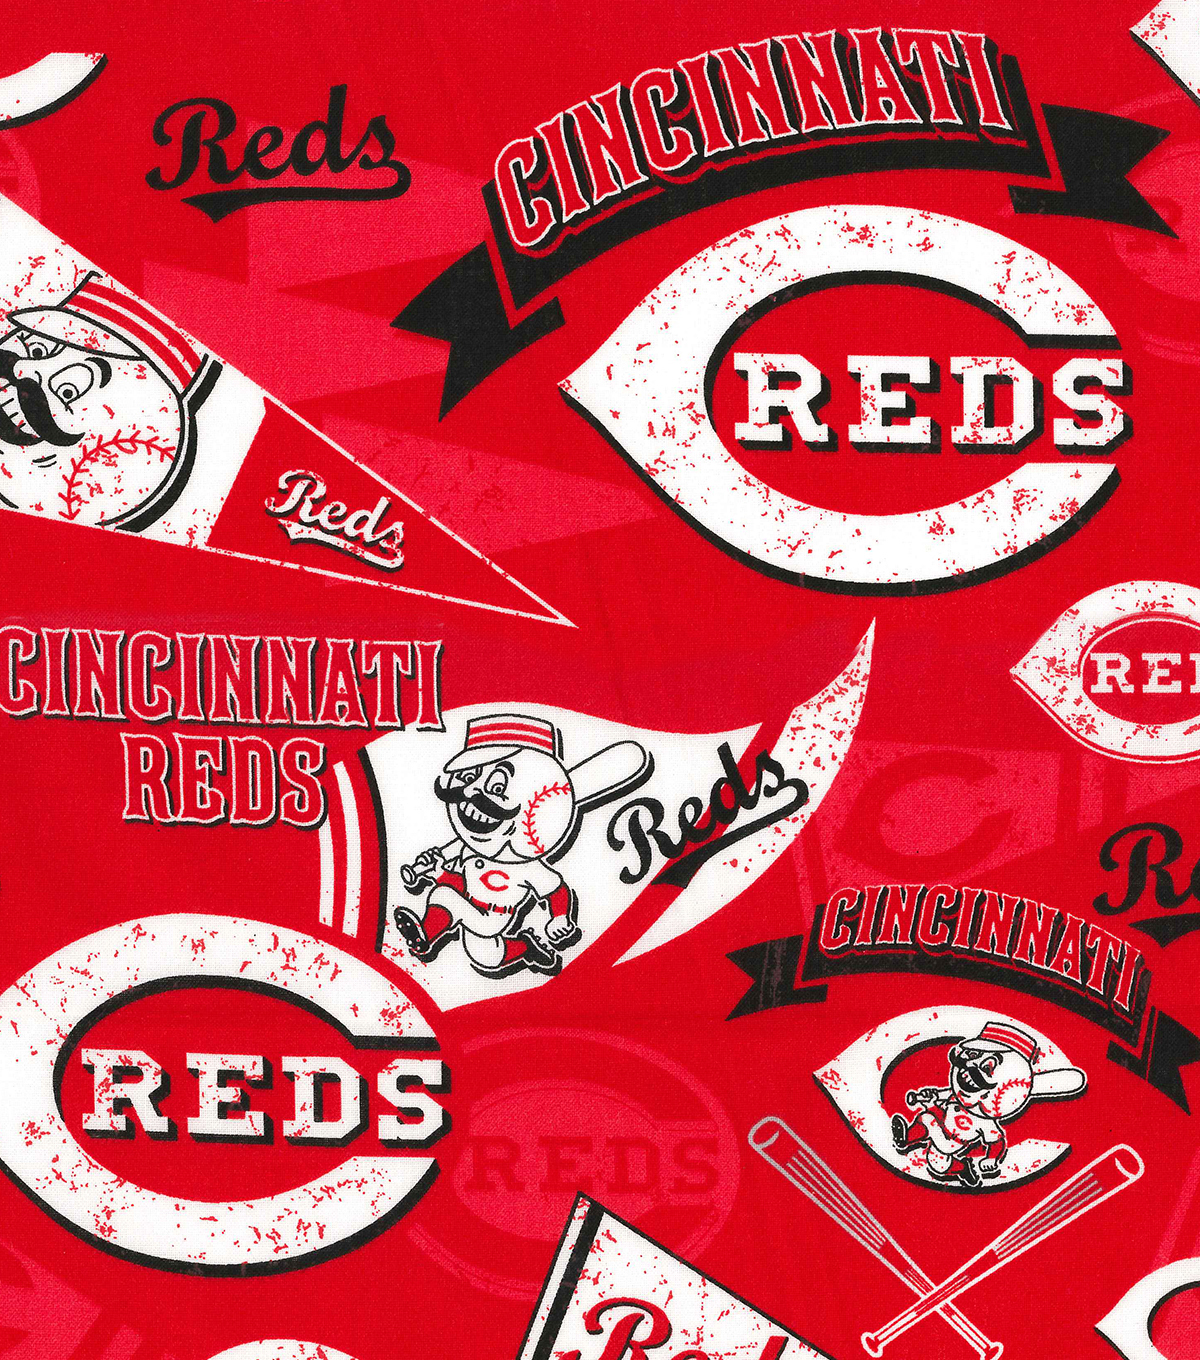 Cincinnati Reds Cotton Fabric Vintage Joann